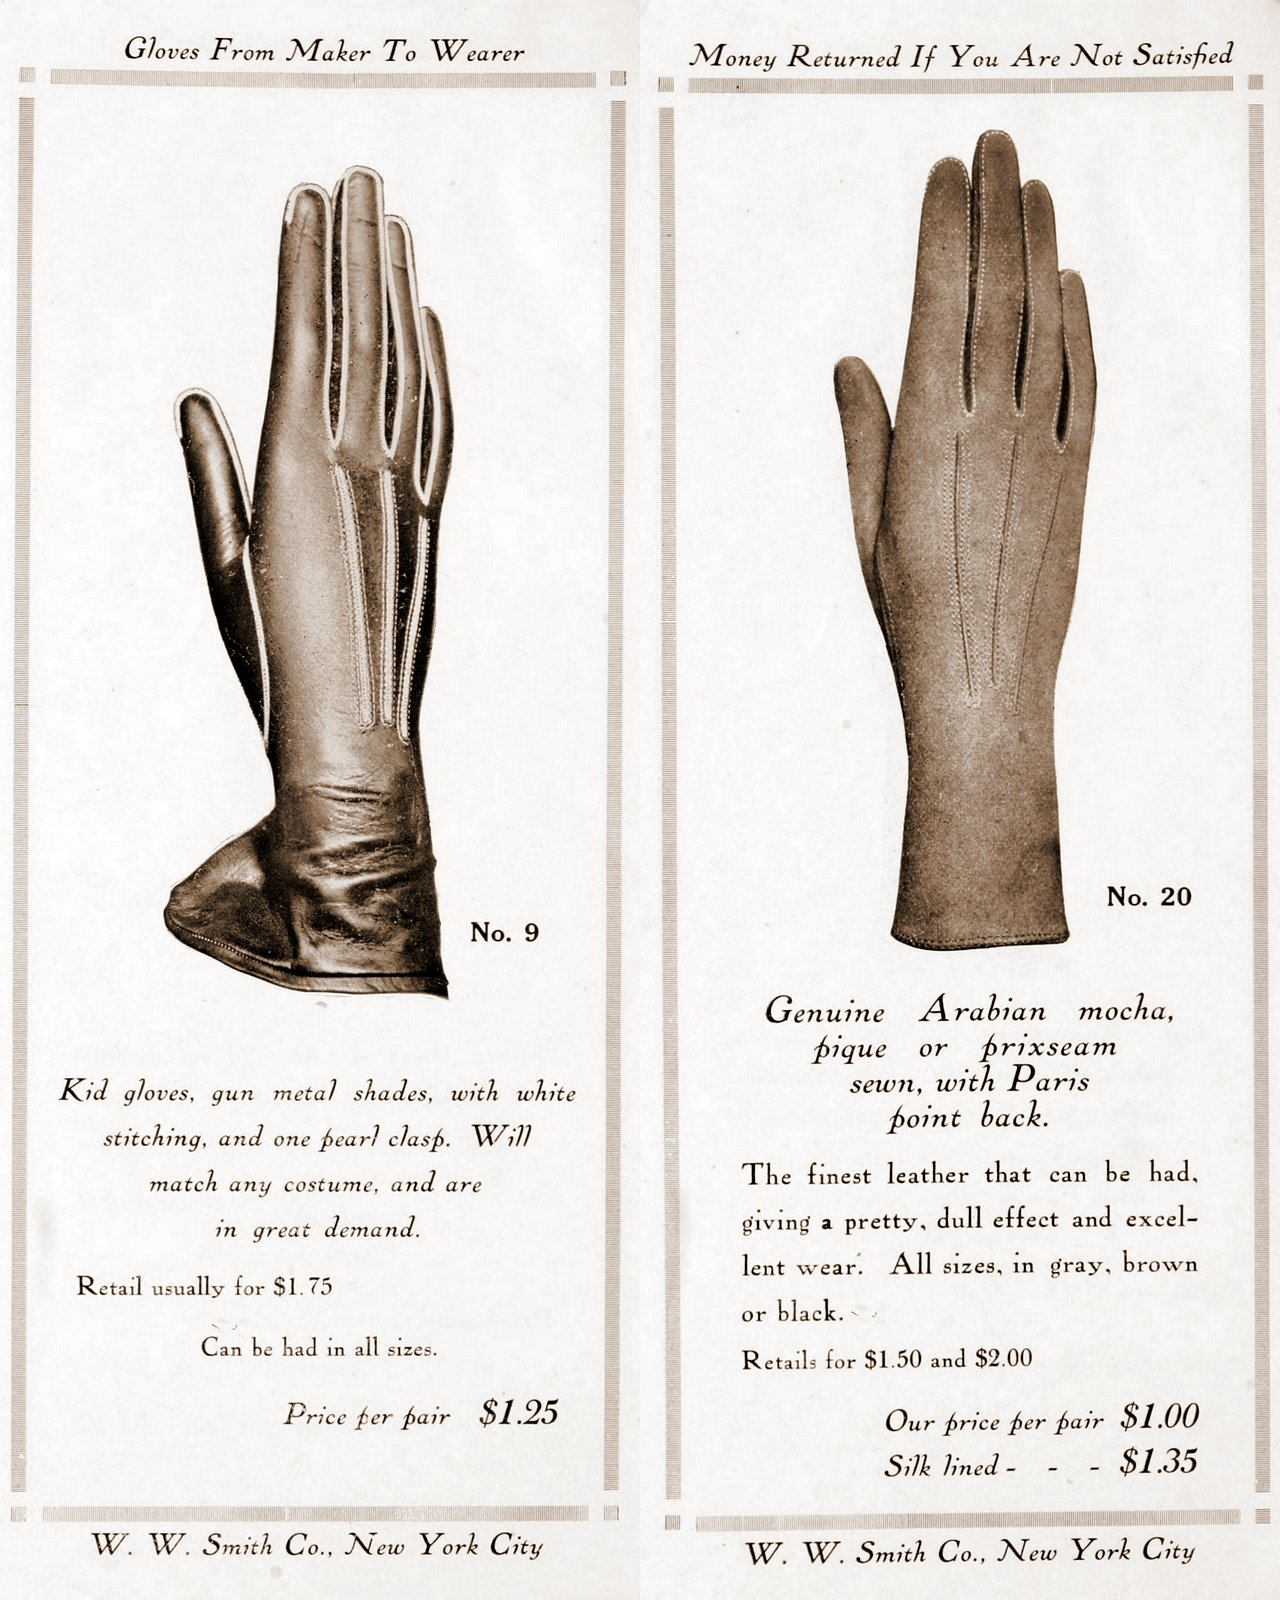 Antique gloves - styles for women from 1912 (3)